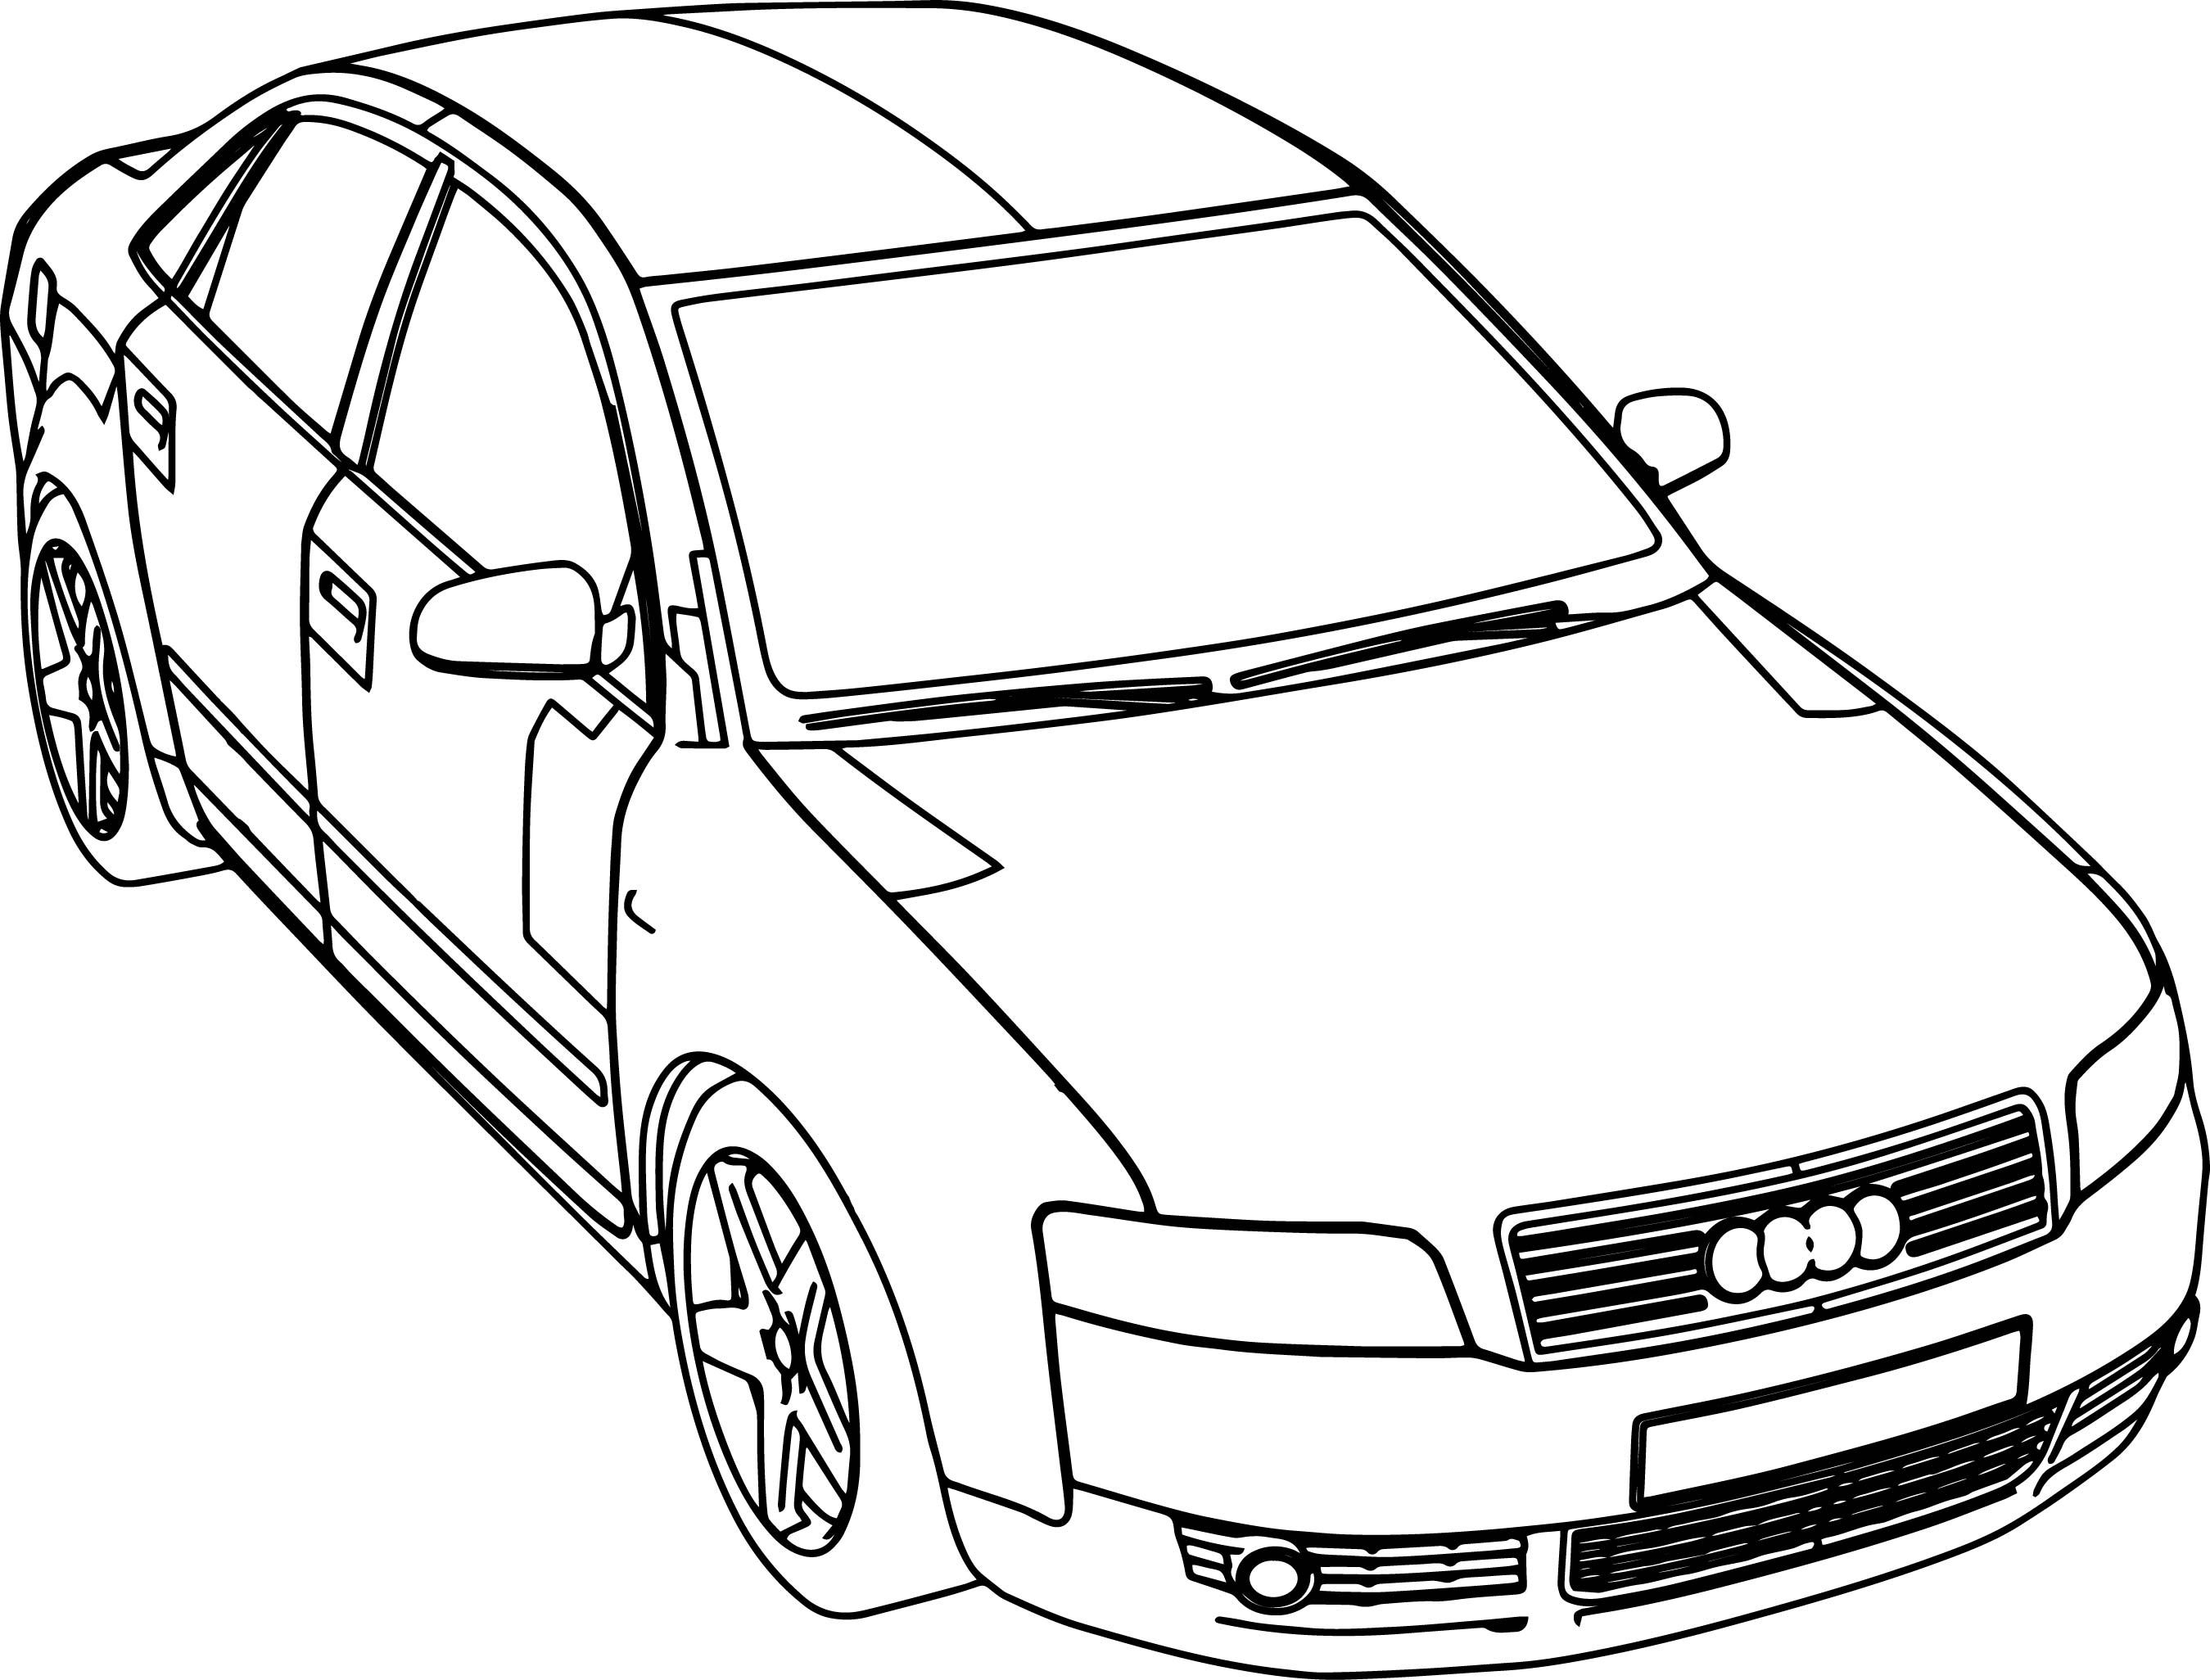 coloring pages of cool cars cool car coloring pages for kids 101 coloring cars cool of pages coloring